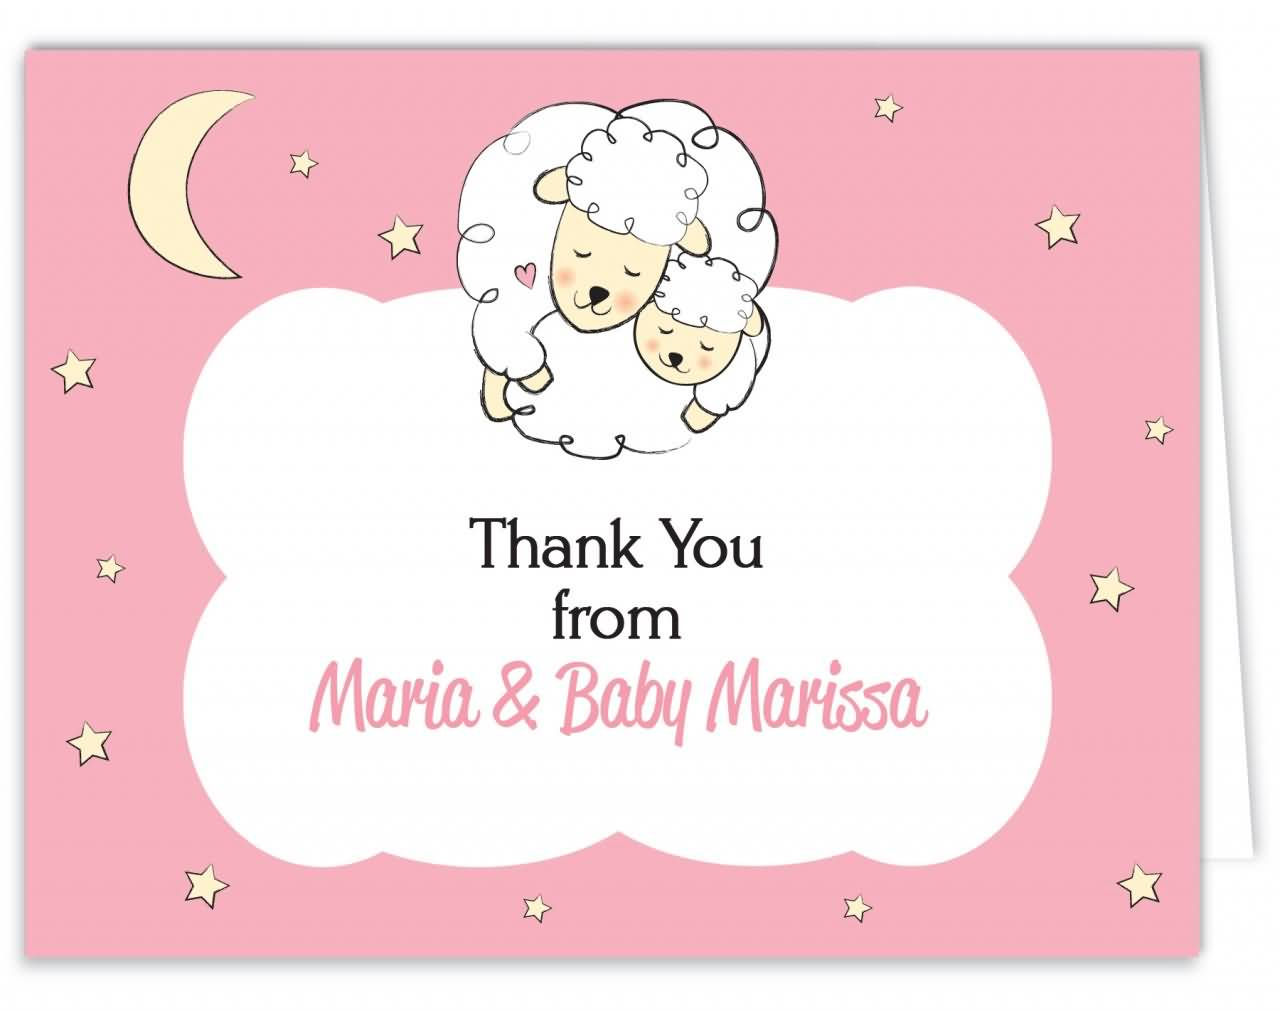 Short Baby Quotes Thank You From Maria & Baby Marissa